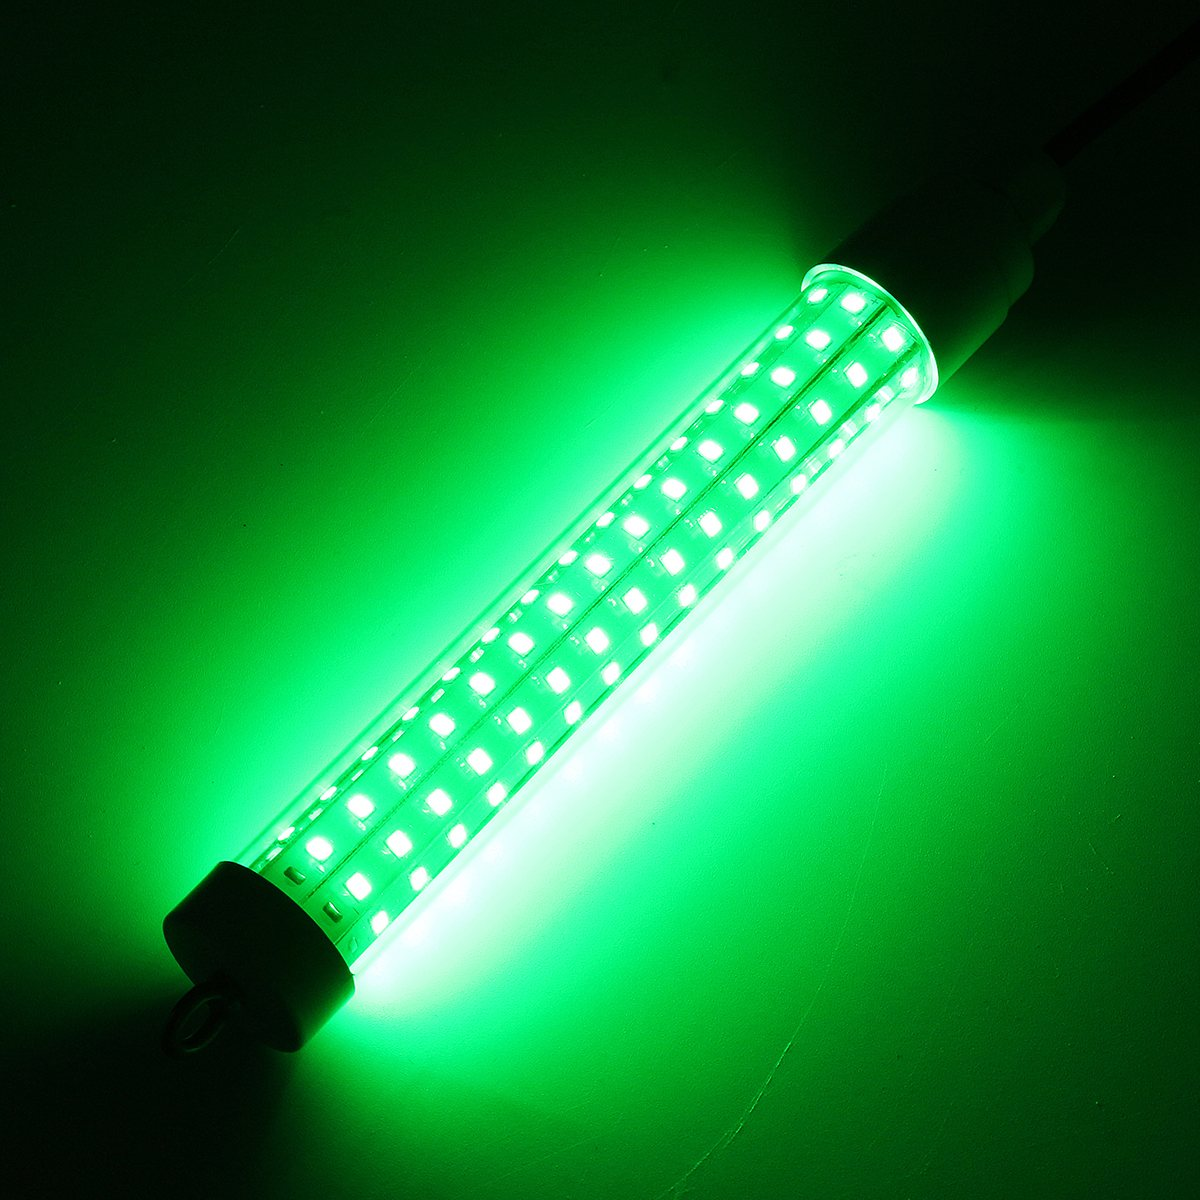 Smuxi 10W 12V Green LED Fishing Light Attracting Fish Underwater LED Night Luring Lamps For Boats Docks Fishing Tools